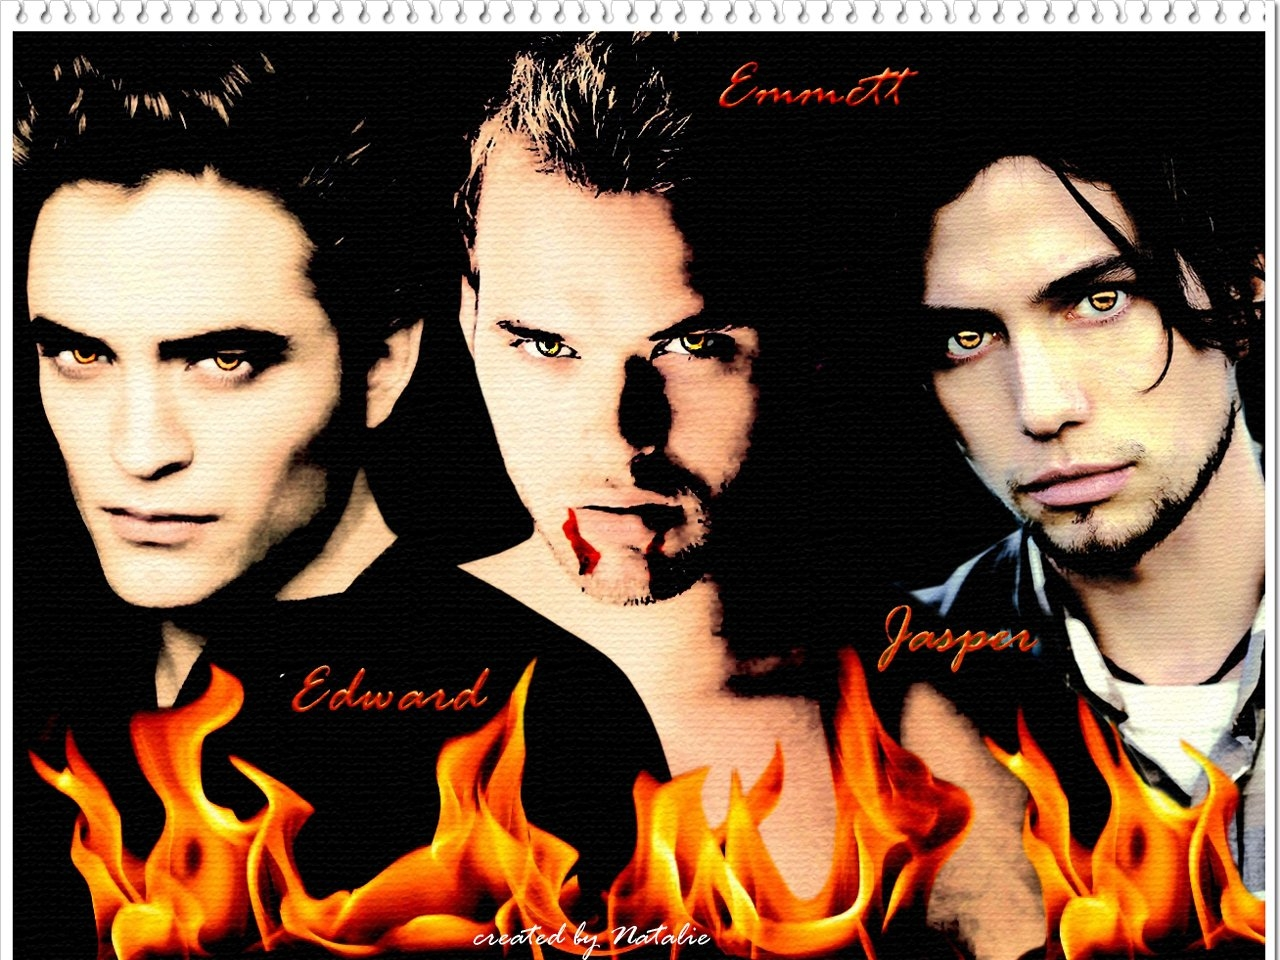 The-Cullen-brothers-twilight-series-8561890-1280-960 - сумреки обои